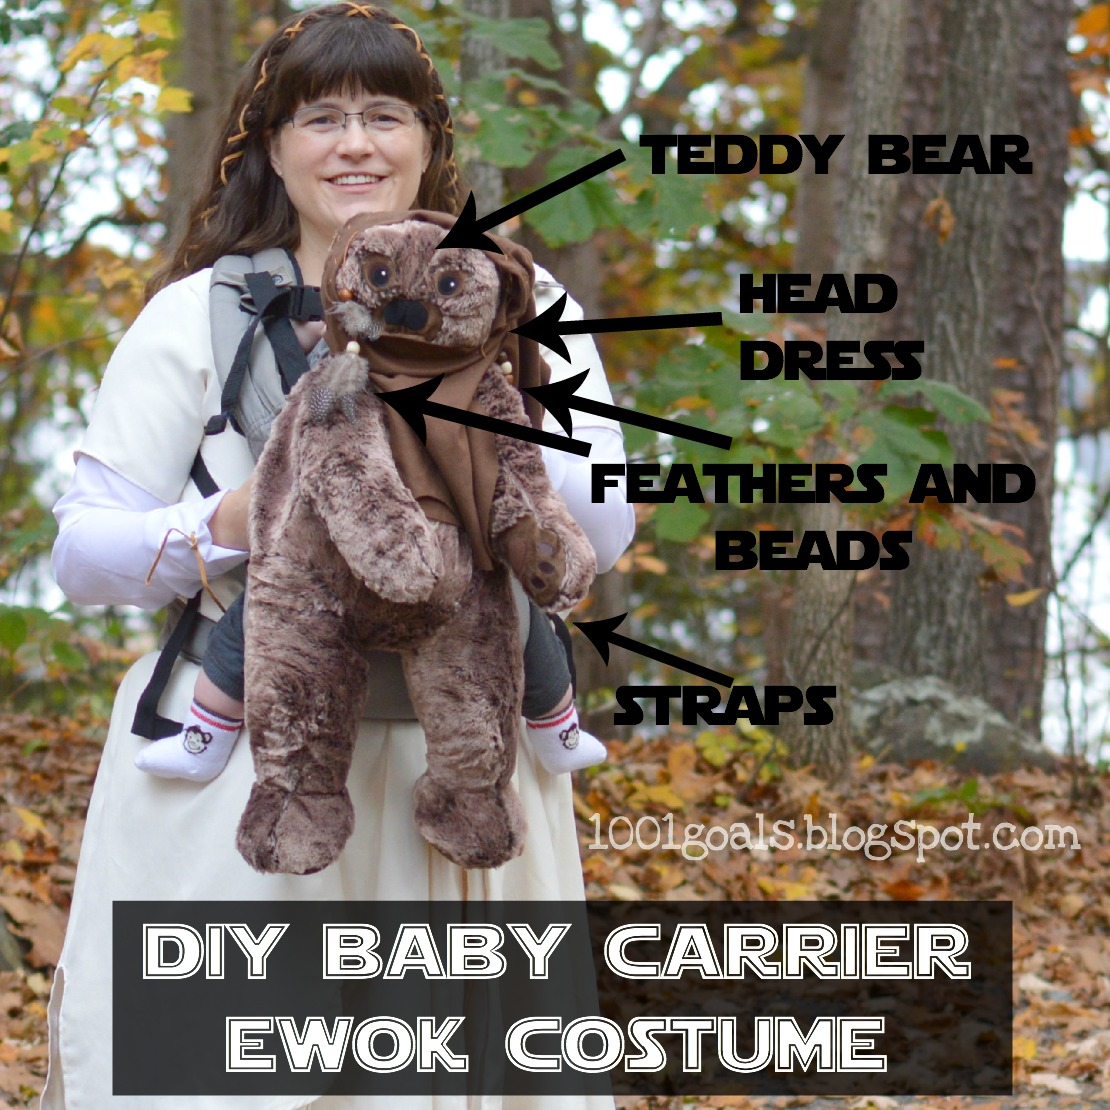 DIY Ewok Baby Carrier Costume  sc 1 st  1001 Goals & 1001 Goals: DIY Ewok Baby Carrier Costume